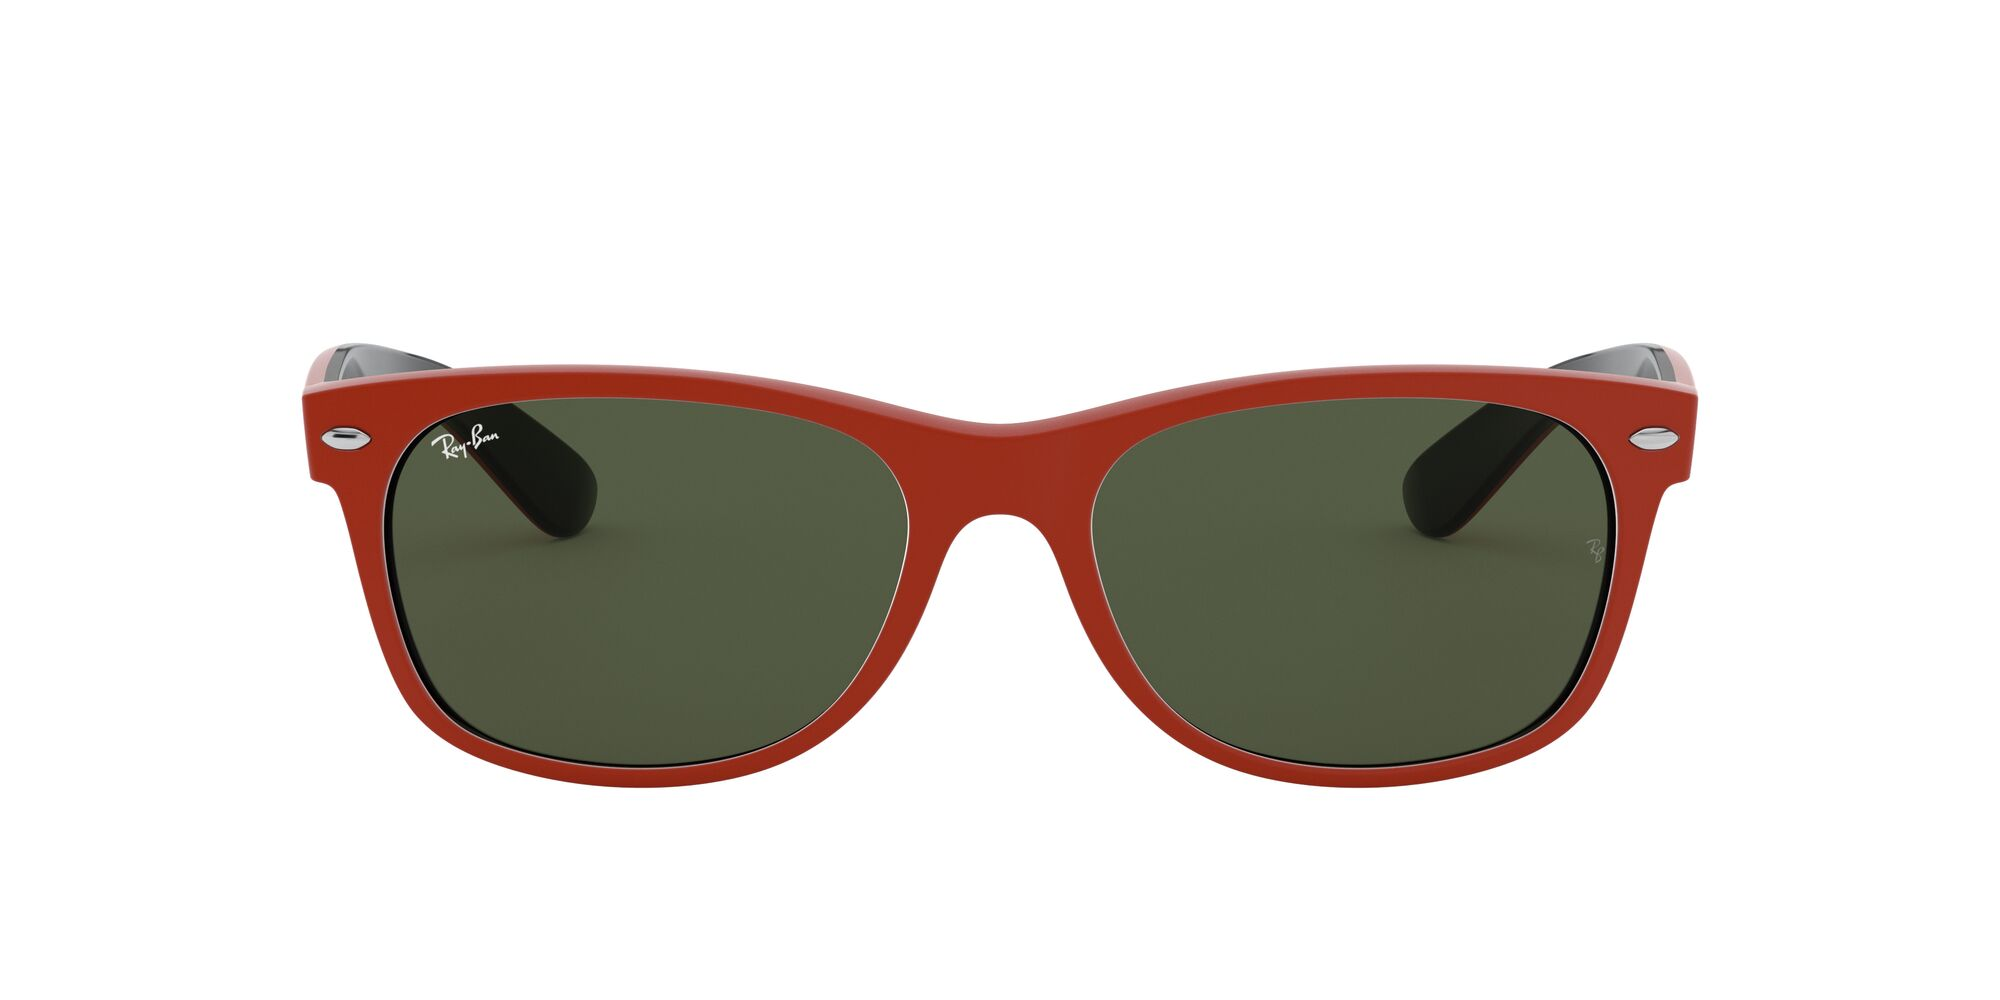 Front Ray-Ban Ray-Ban 0RB2132 646631 58/18 Rood, Blauw/Groen